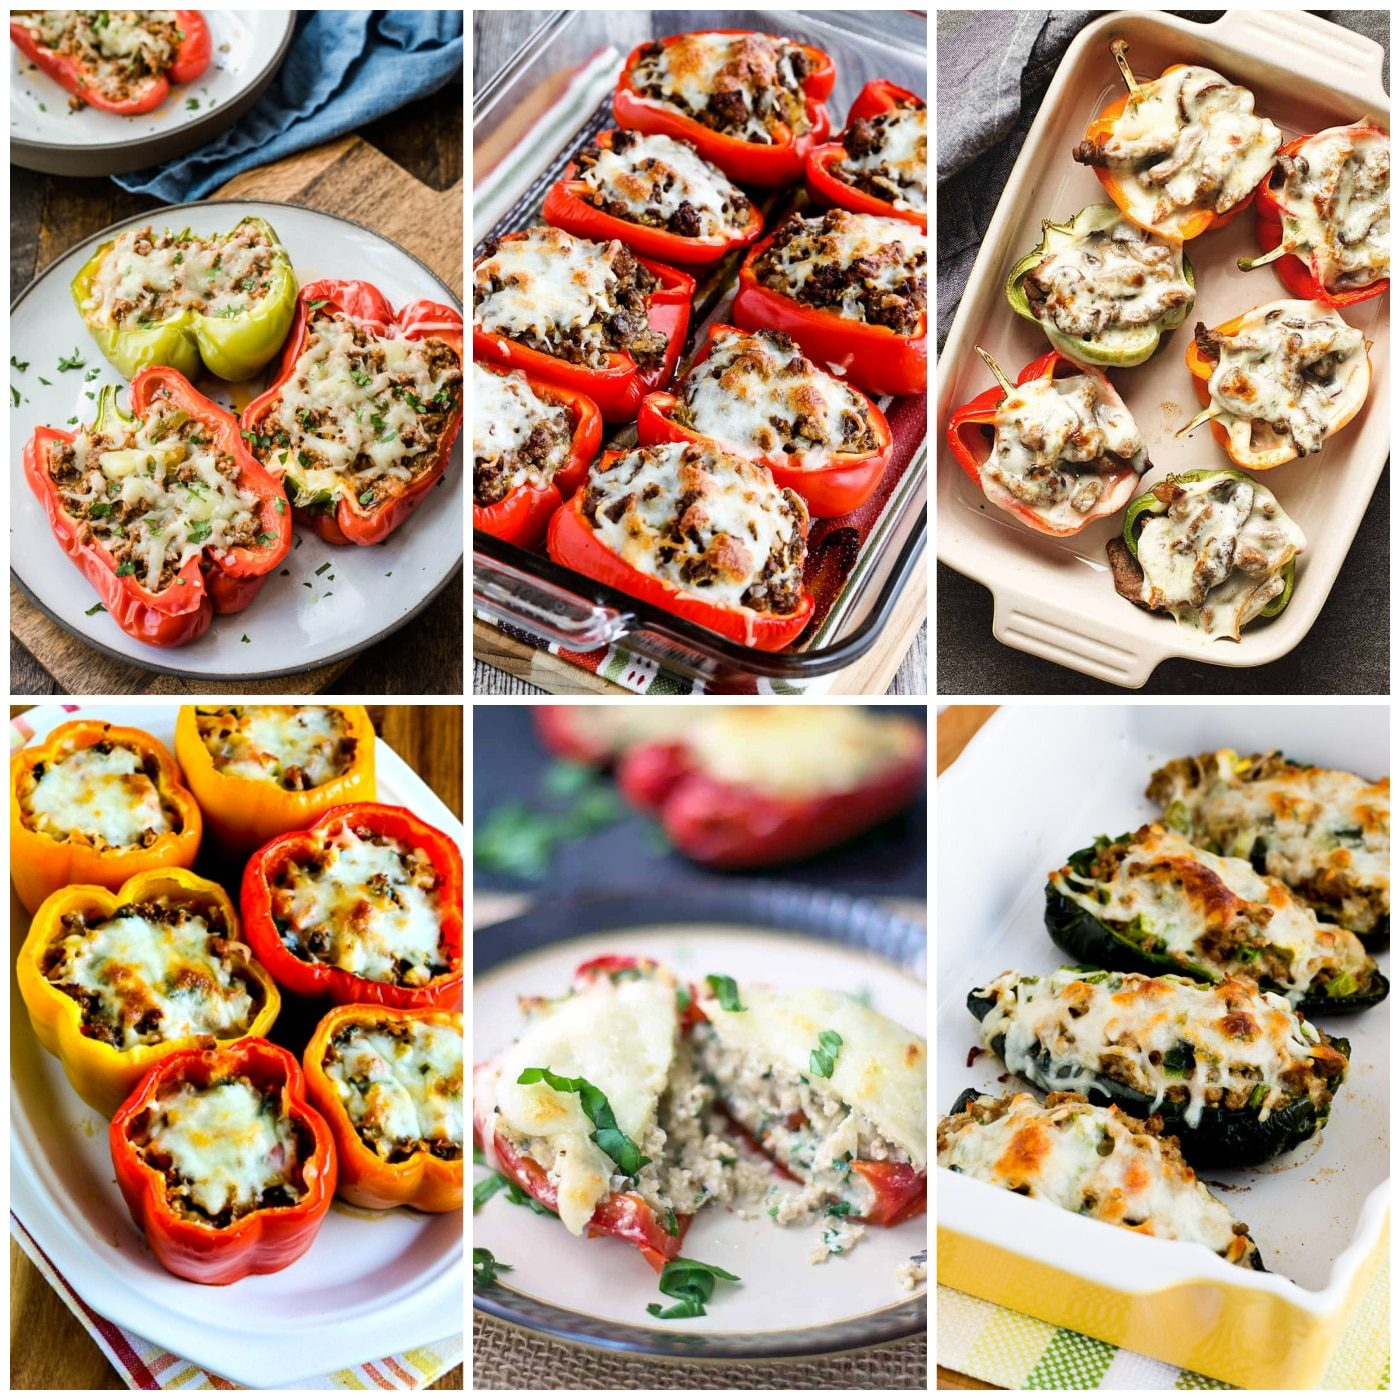 Low-Carb and Keto Stuffed Peppers Recipes  Kalyn's Kitchen